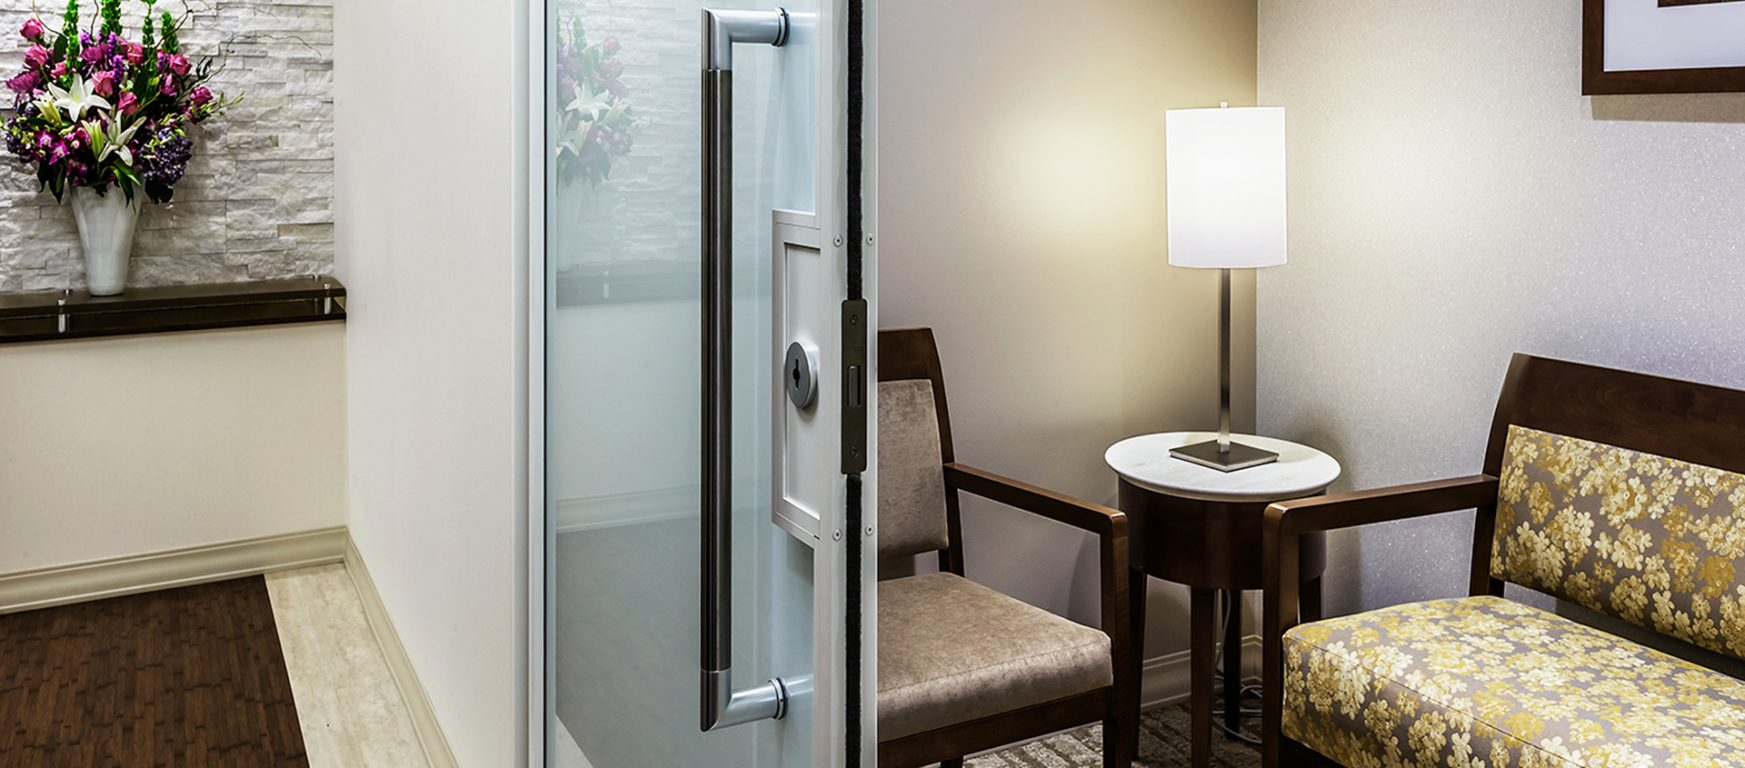 PK-30 Frosted Sliding glass doors with FSB lock